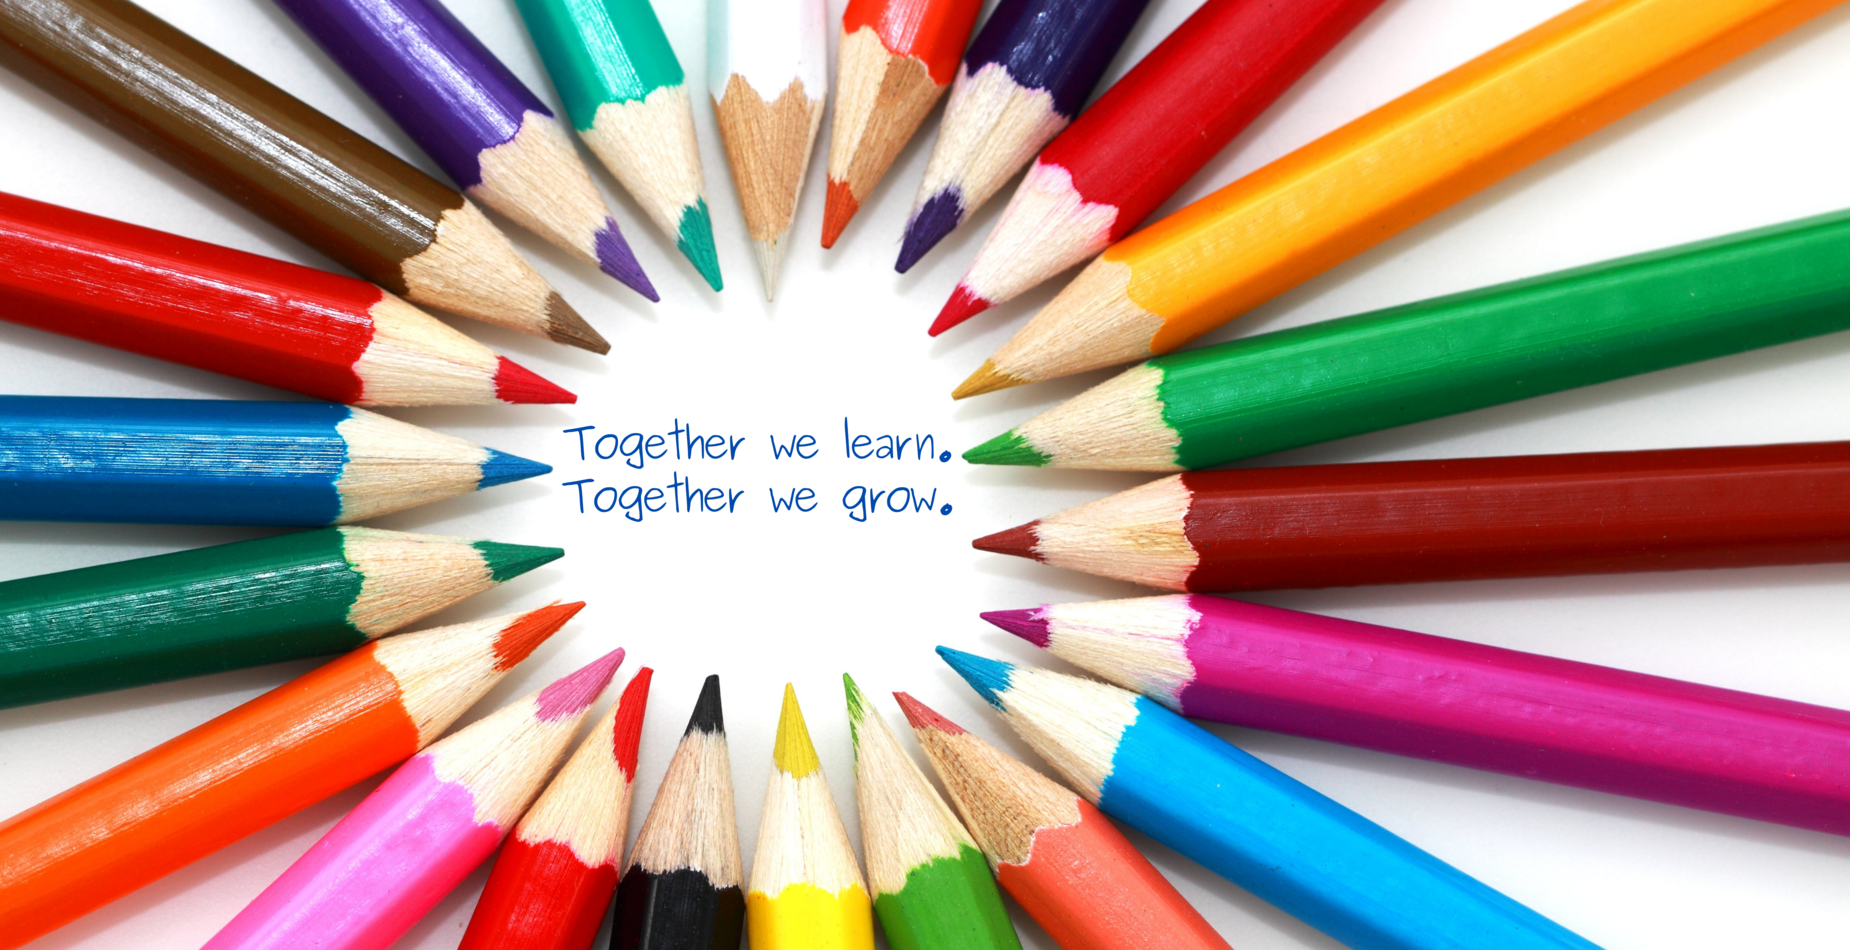 Together We Learn Together We Grow